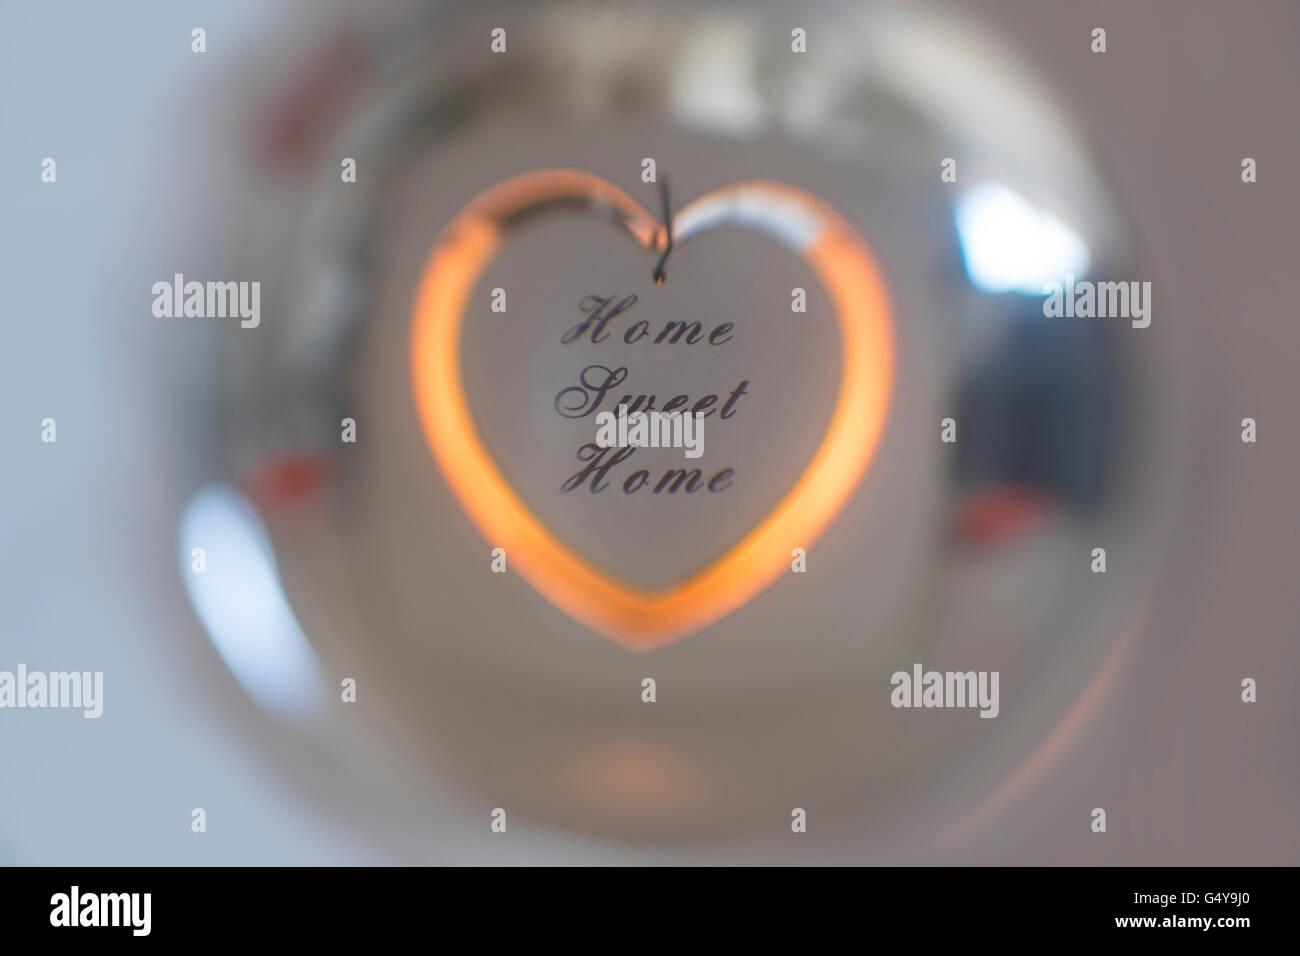 Home Sweet Home candle holder reflected in a crystal ball - Stock Image